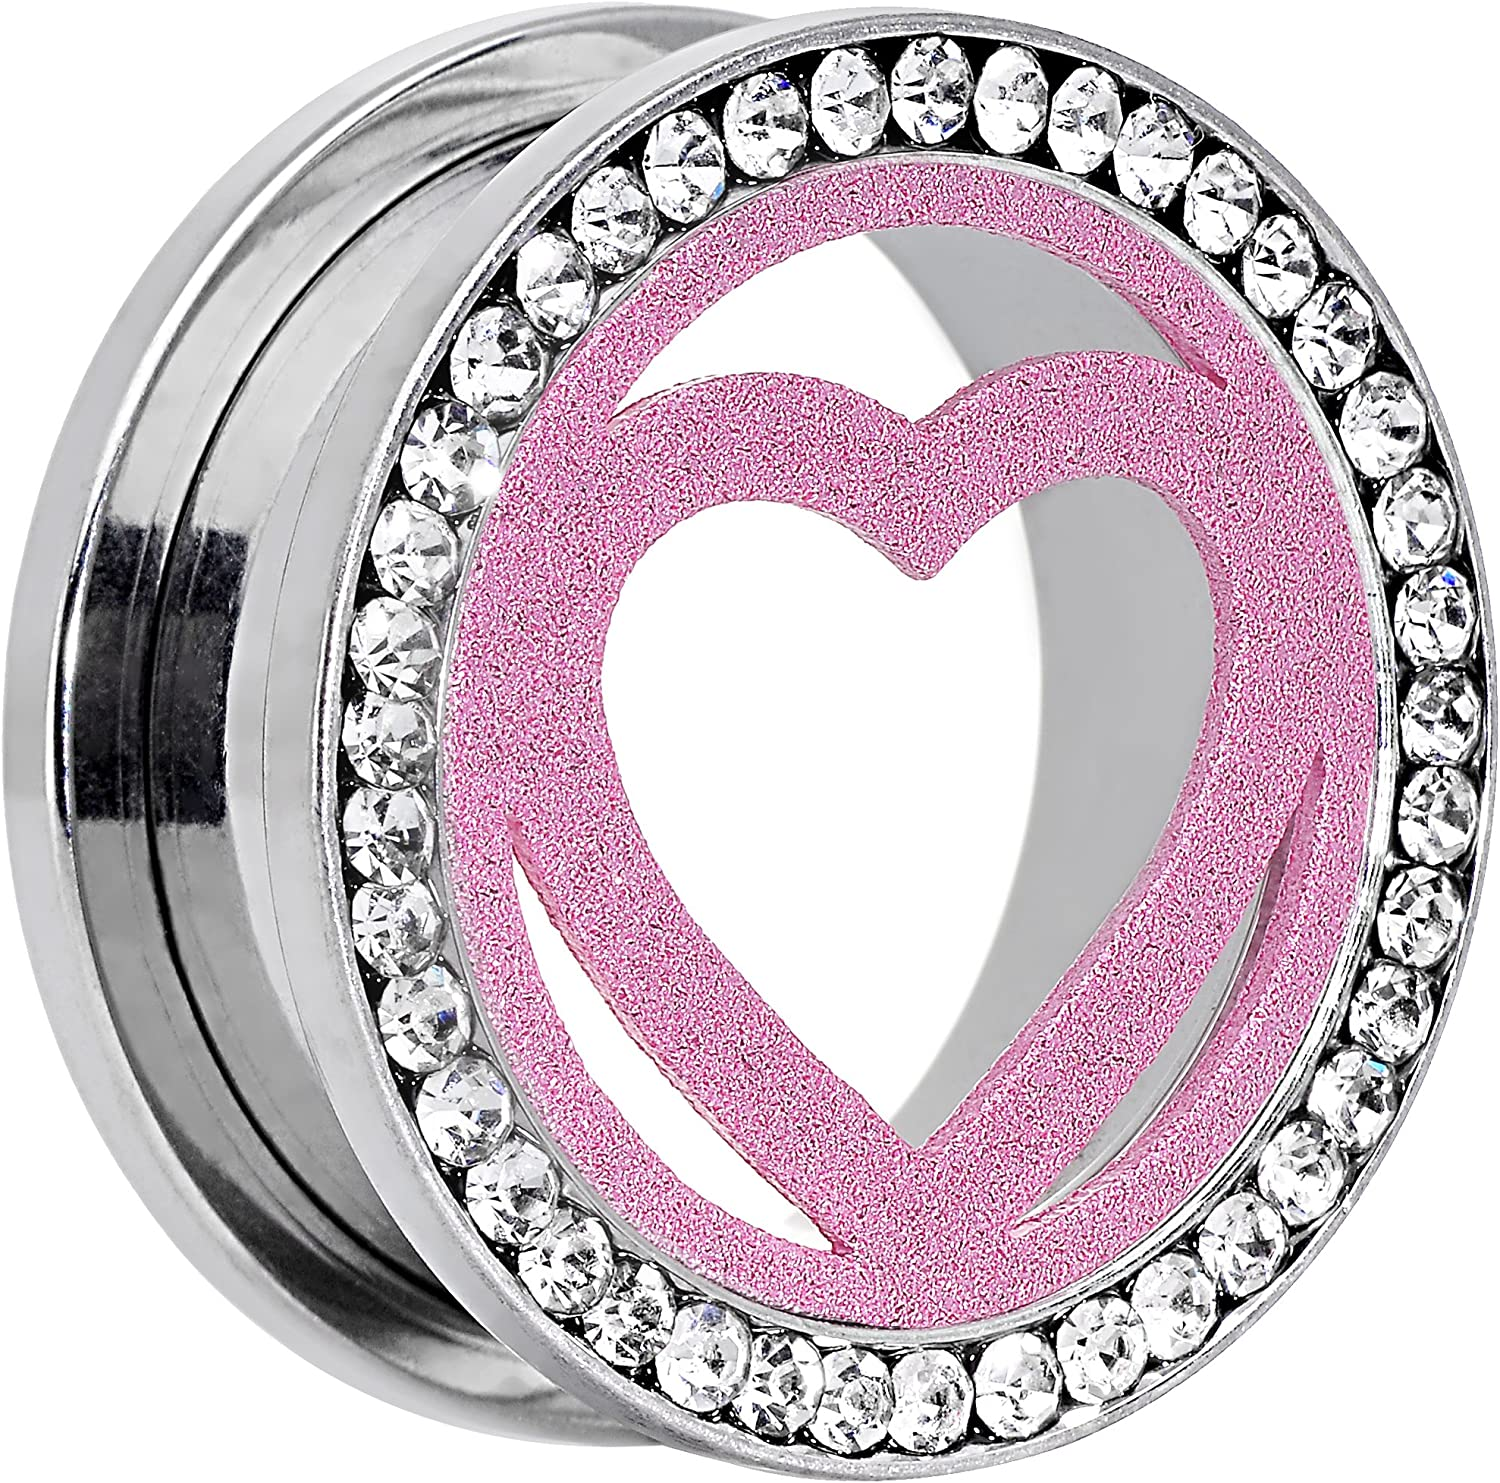 Body Candy Stainless Steel Clear Accent Pink Heart Tunnel Ear Gauge Plug (1 Piece) 7/8